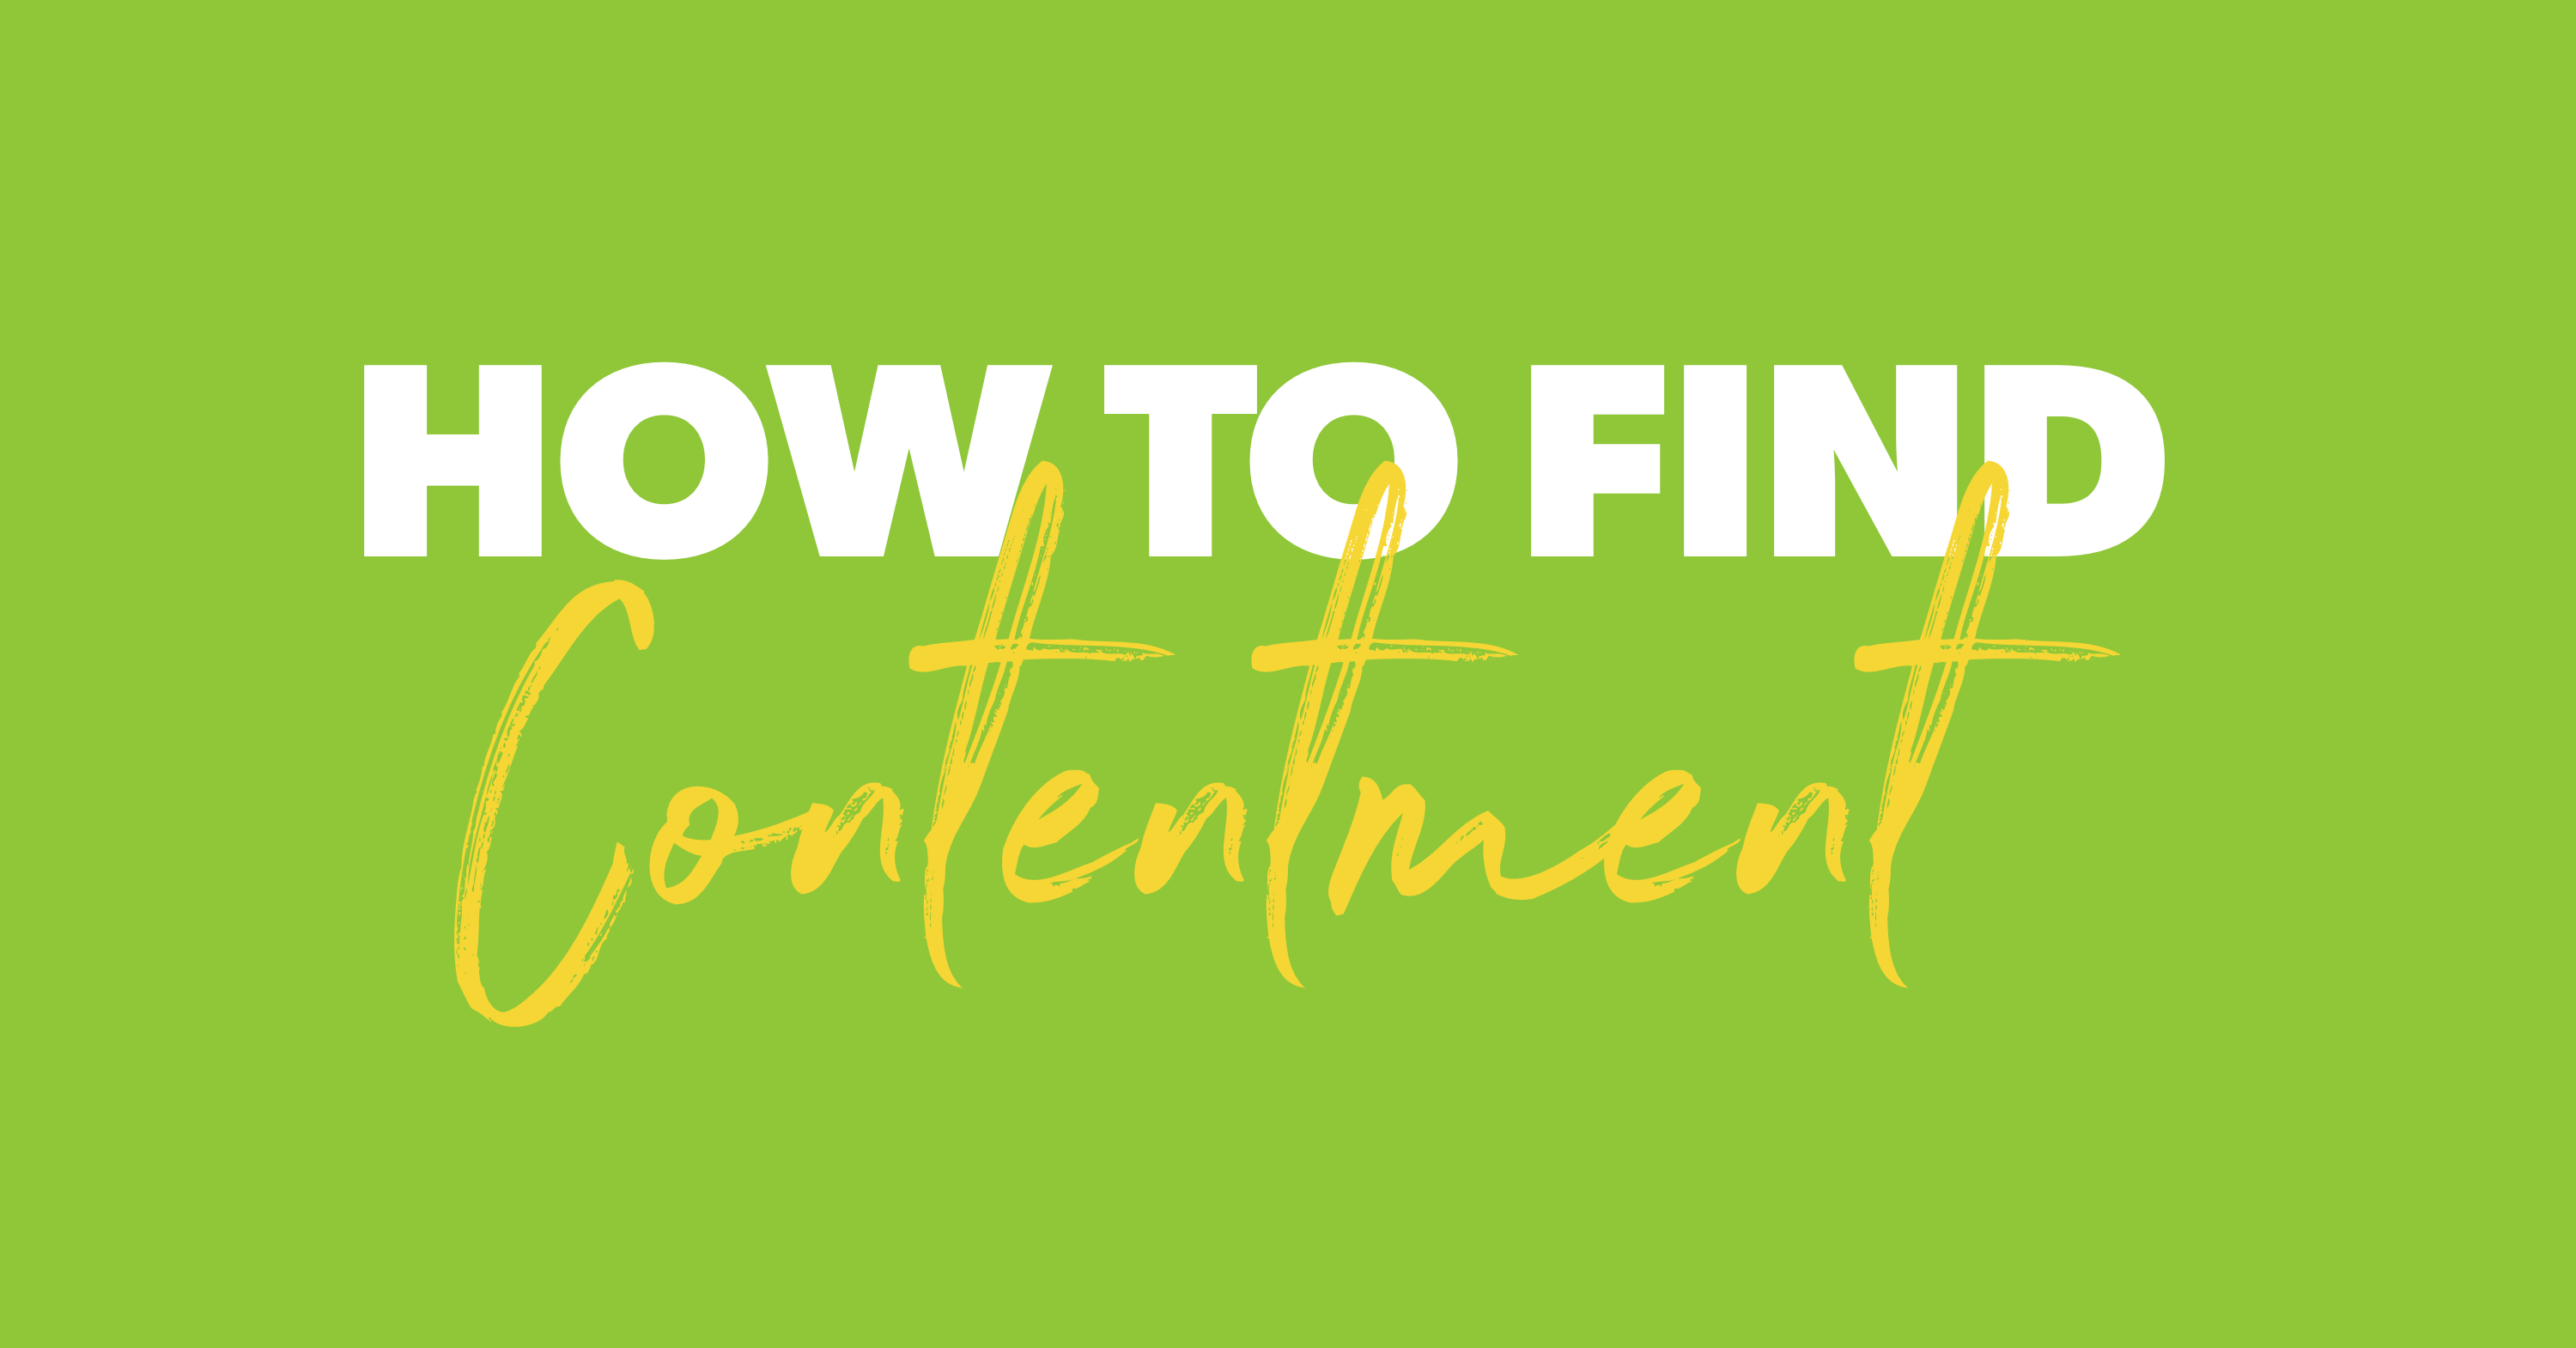 How to Find Contentment